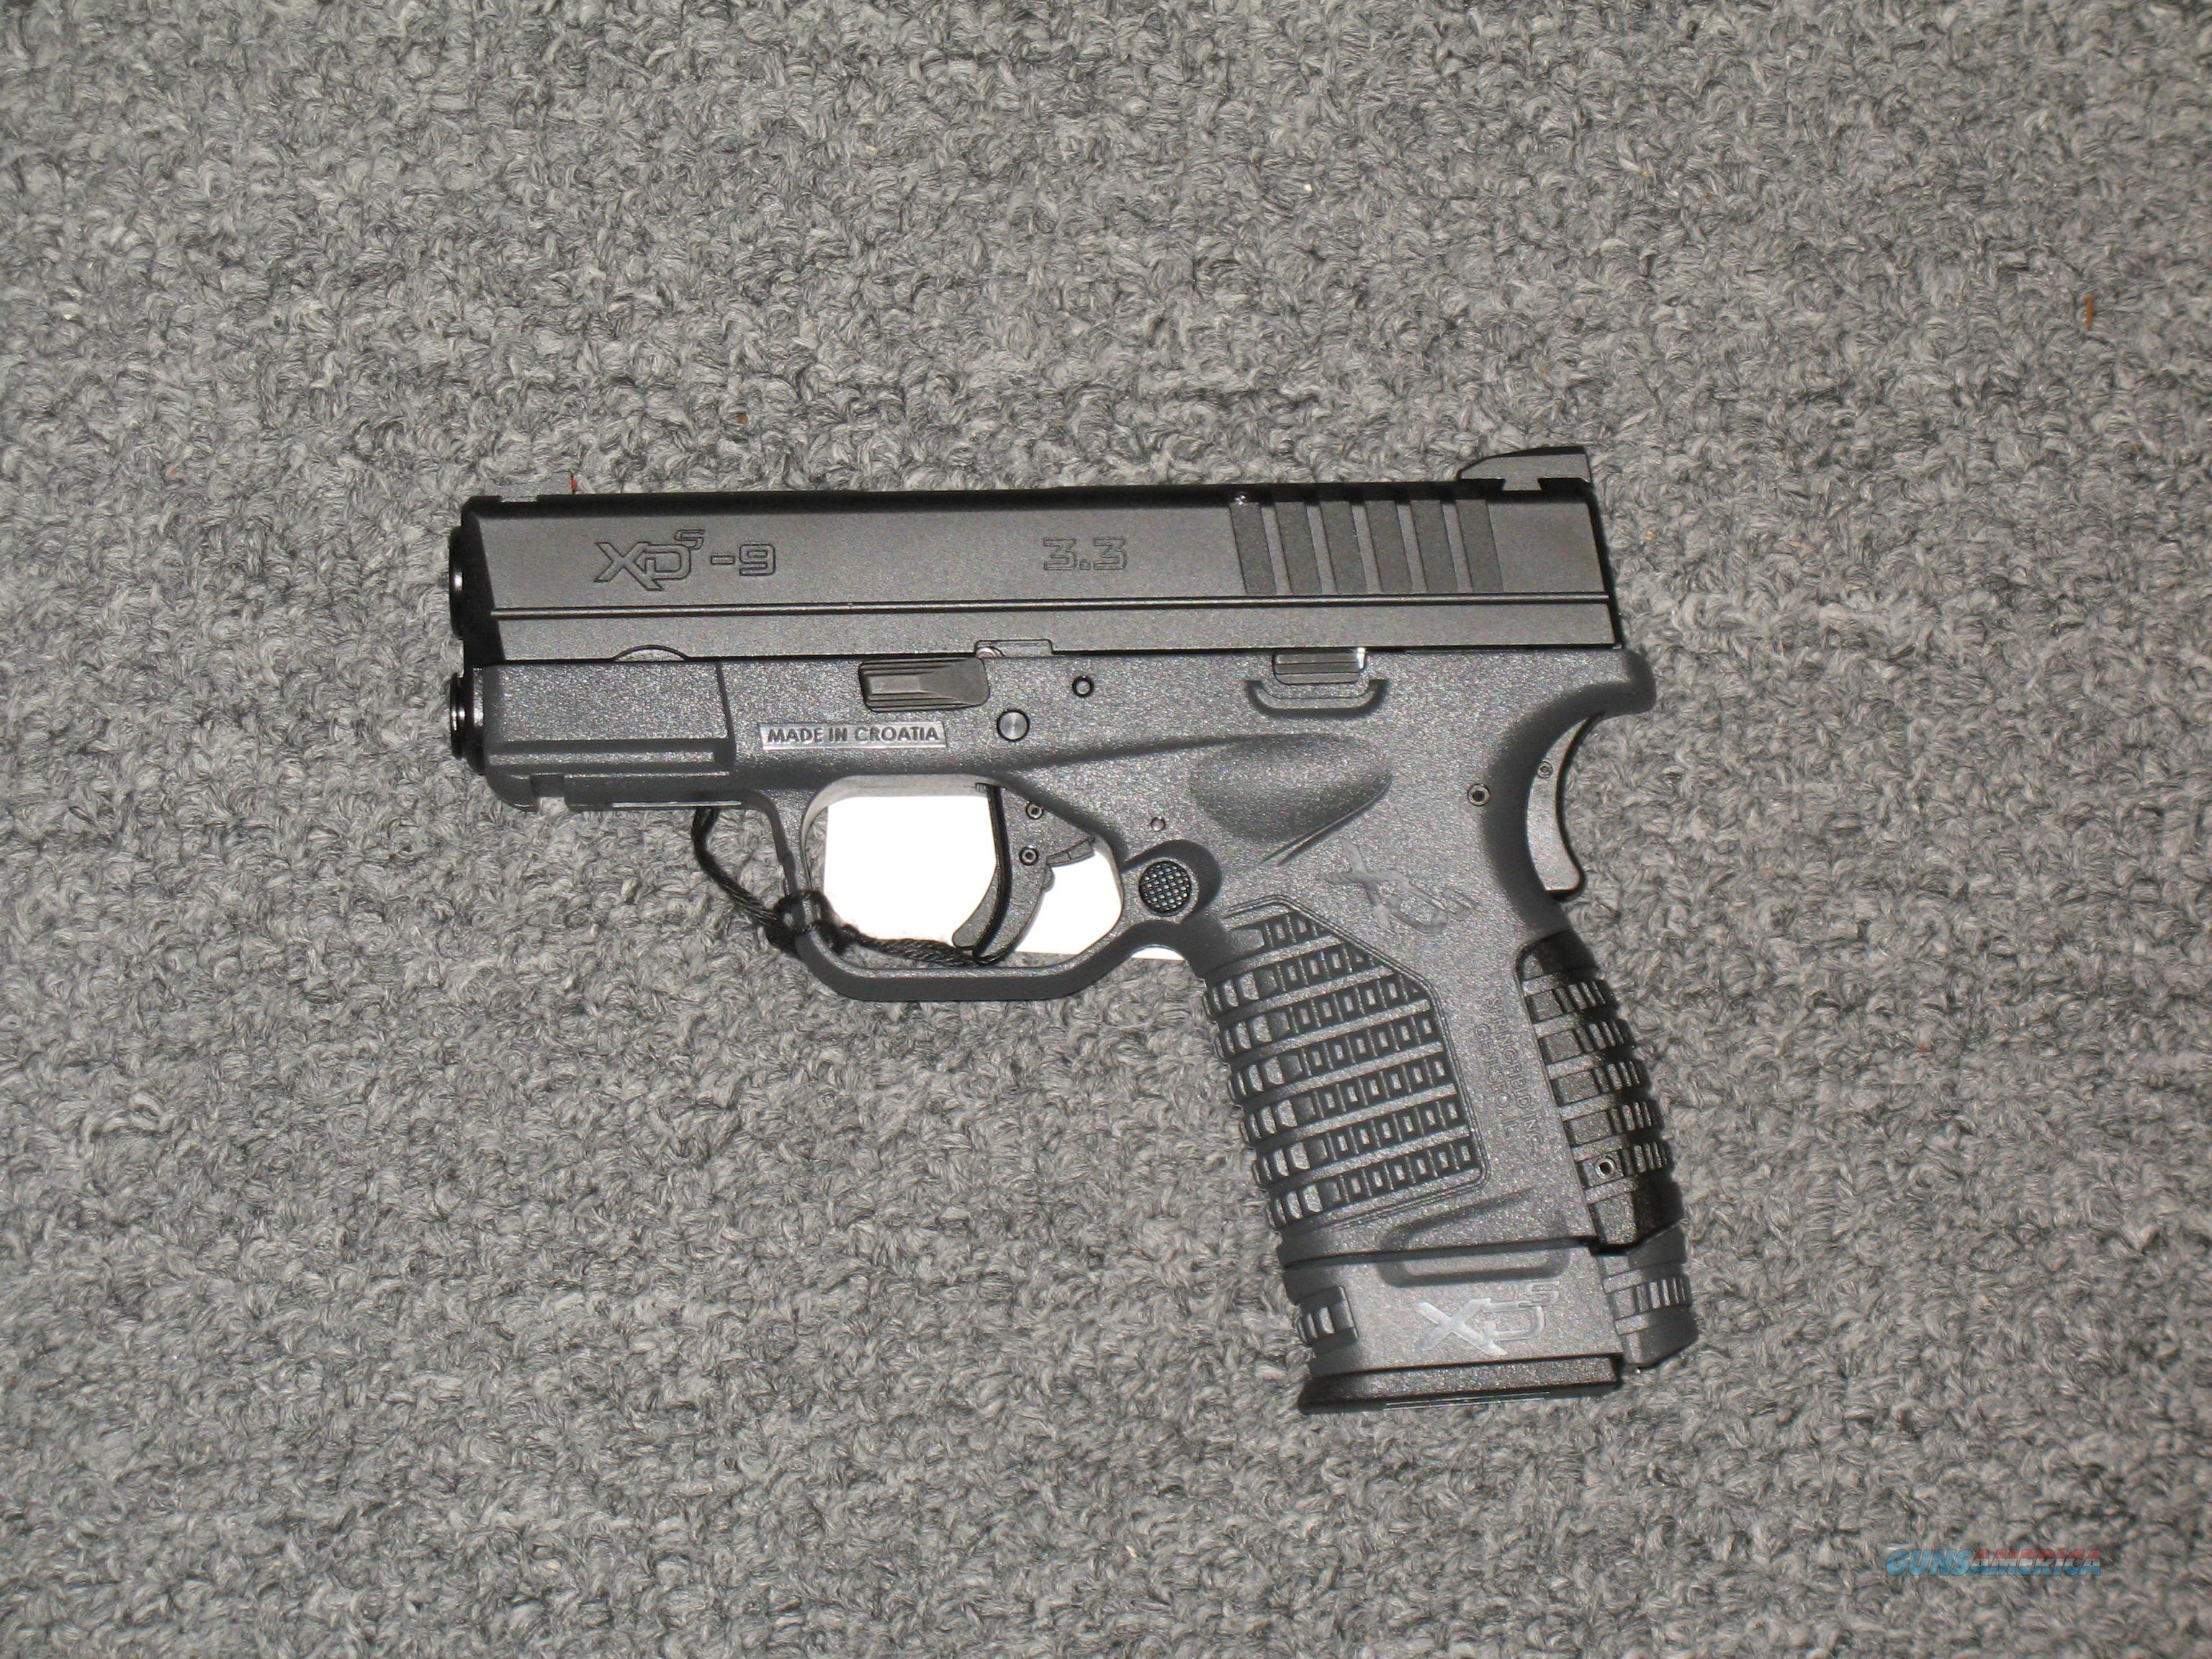 XDS-9 w/one 7 rd and one 8 rd mags with a black and grey finish 3.3  Guns > Pistols > Springfield Armory Pistols > XD-S